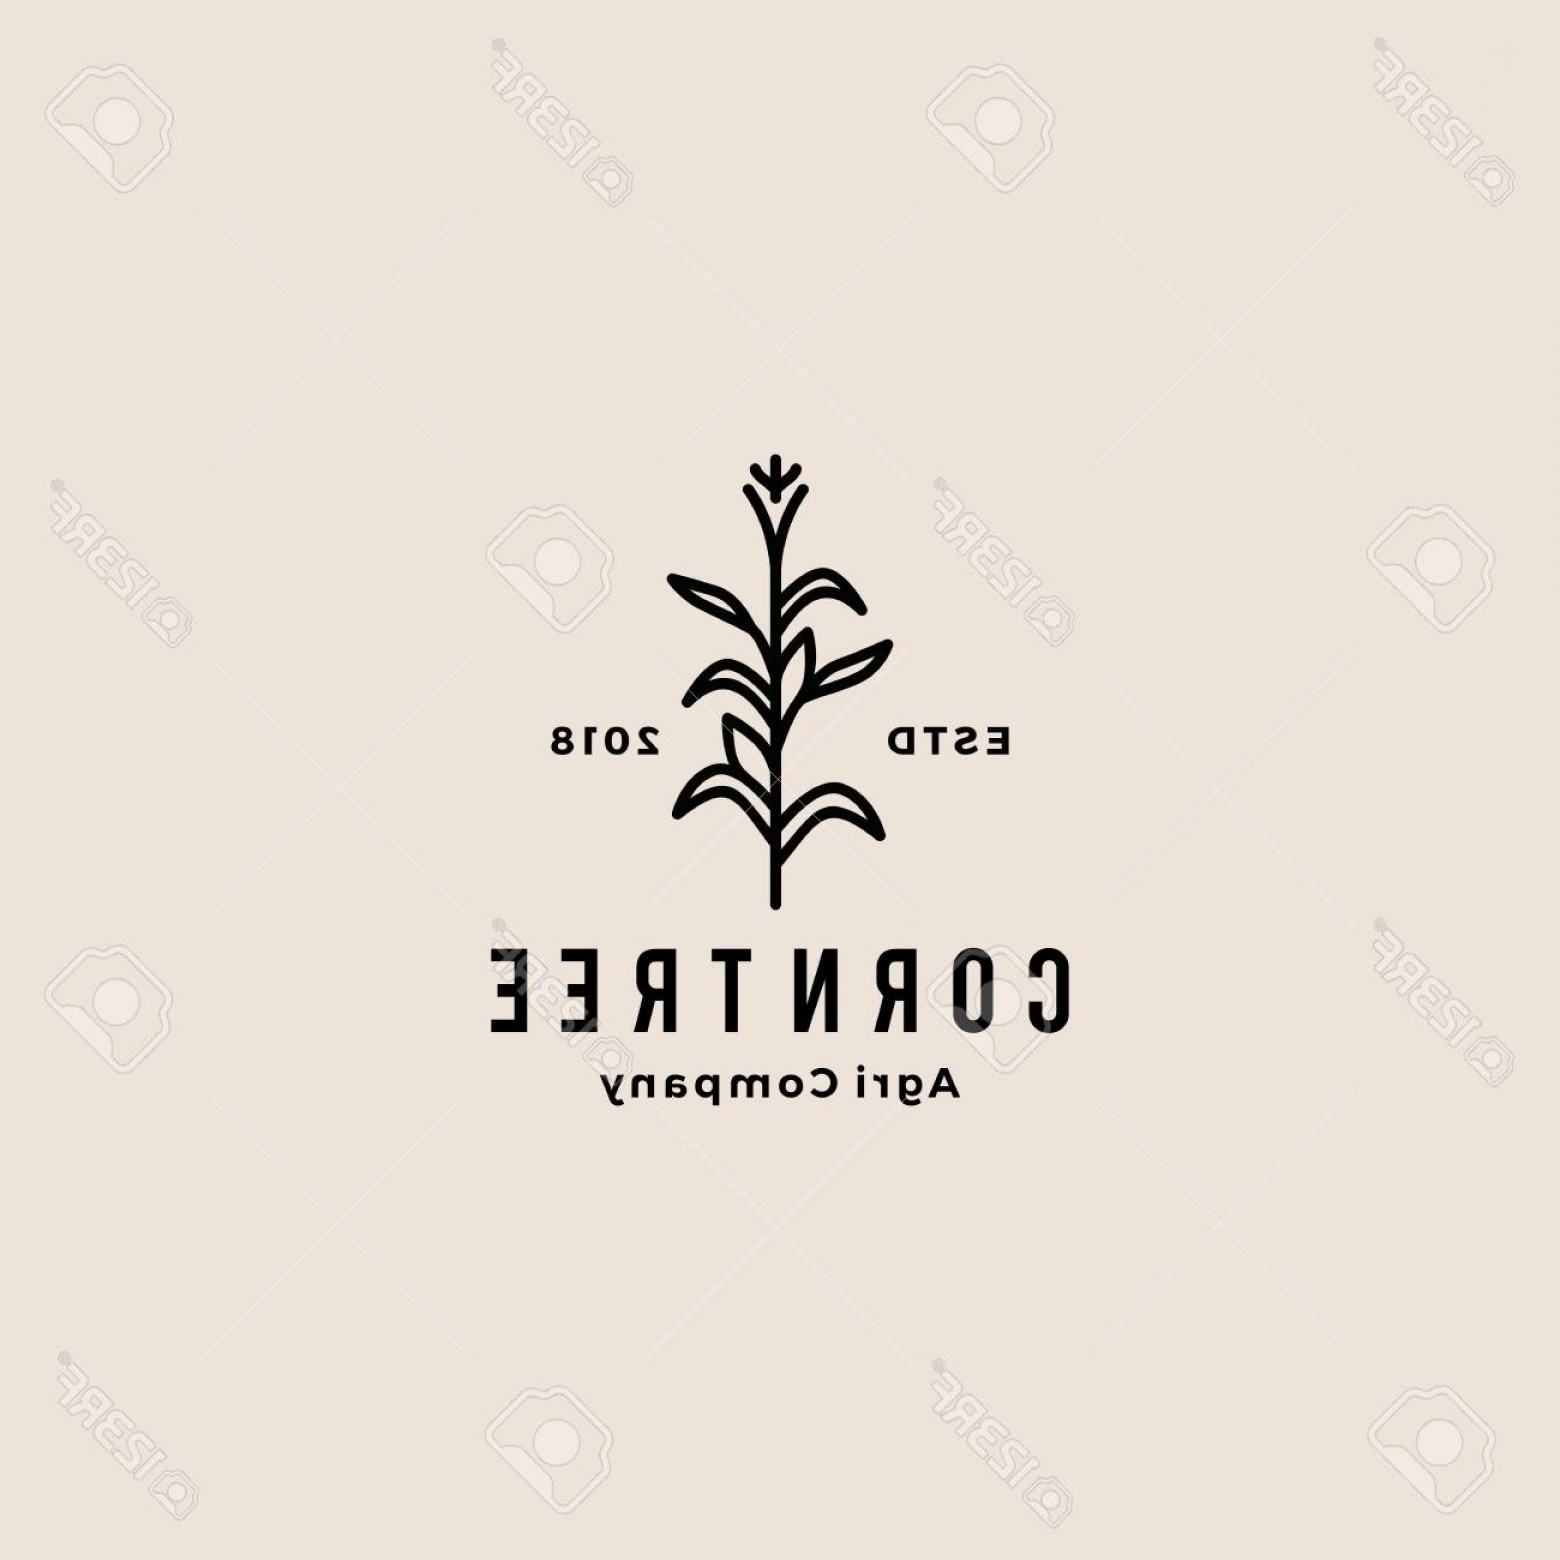 Maize Vector Tree: Photostock Vector Corn Tree Hipster Retro Vintage Badge Vector Icon Illustration